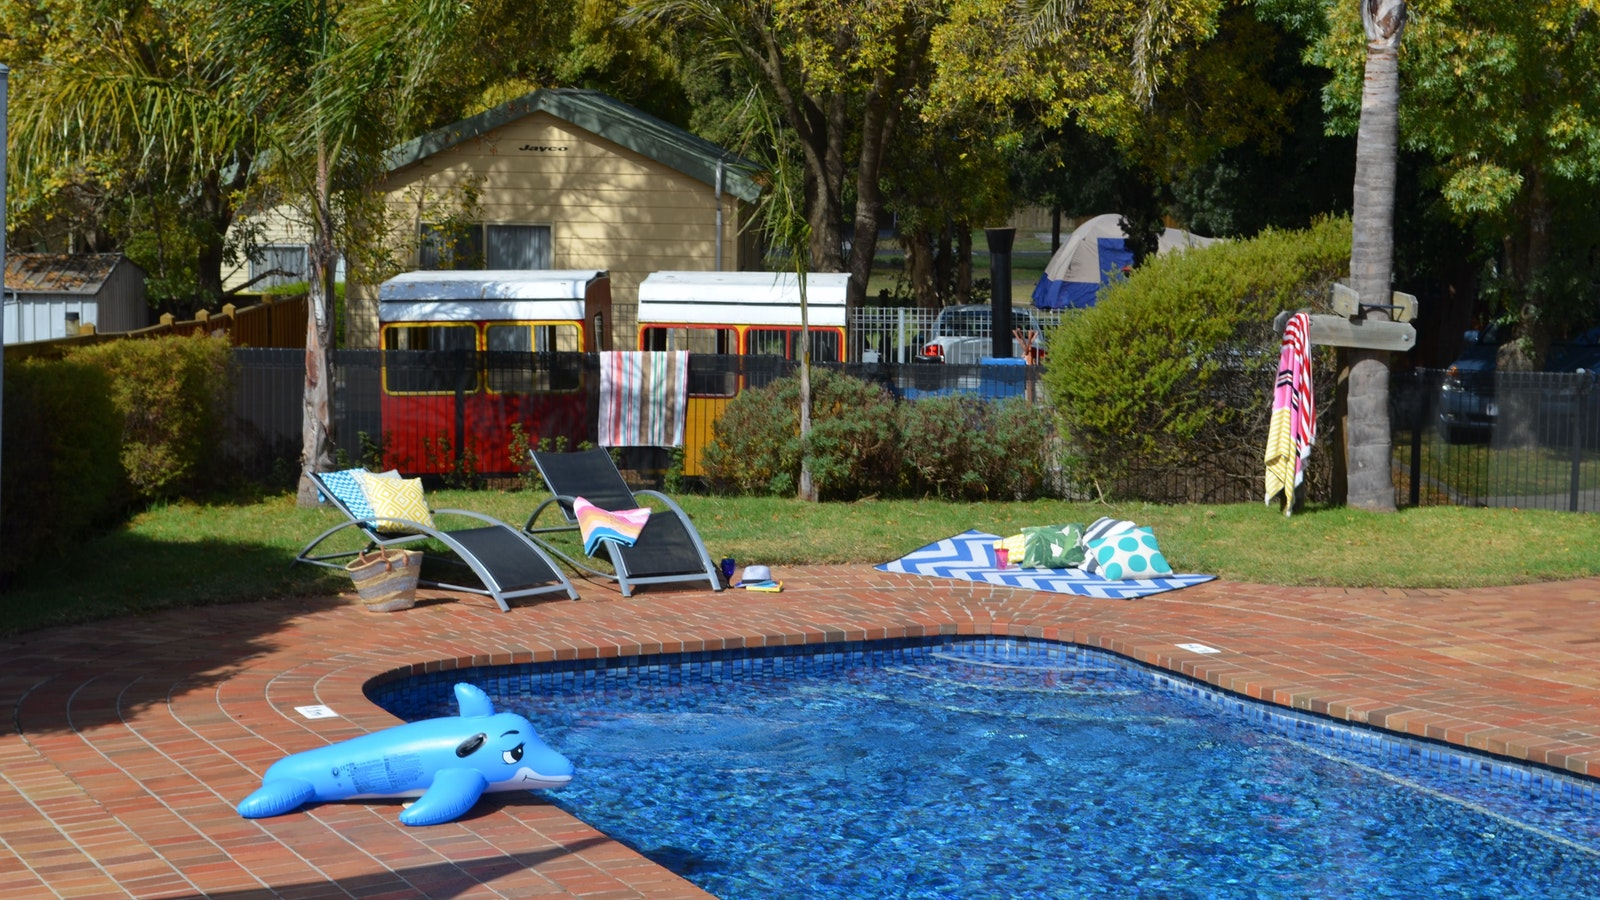 BIG4 Mornington Peninsula Holiday Park